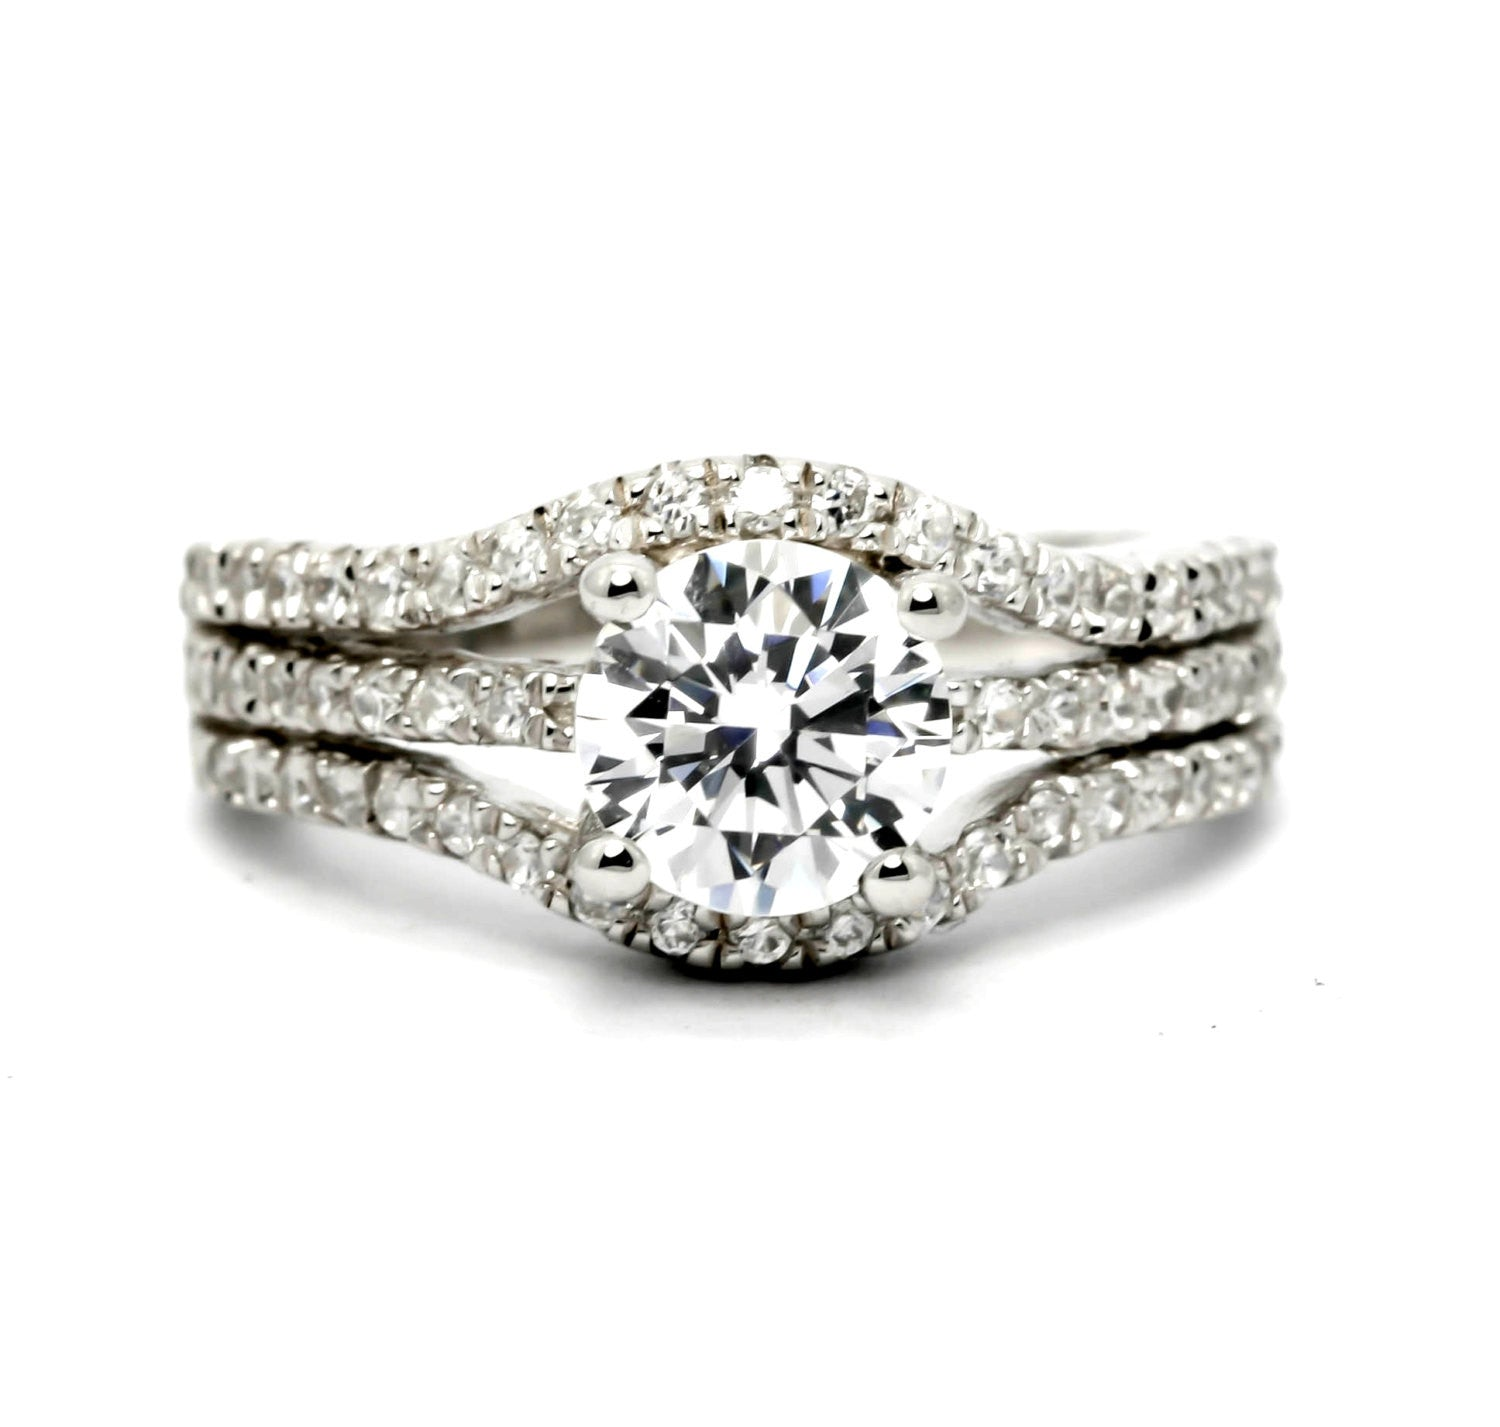 Moissanite Engagement Ring, Unique Triple Shank With .66 Carat Diamond & 1.25 Carat Forever Brilliant Moissanite Center Stone, Anniversary - FBY11605